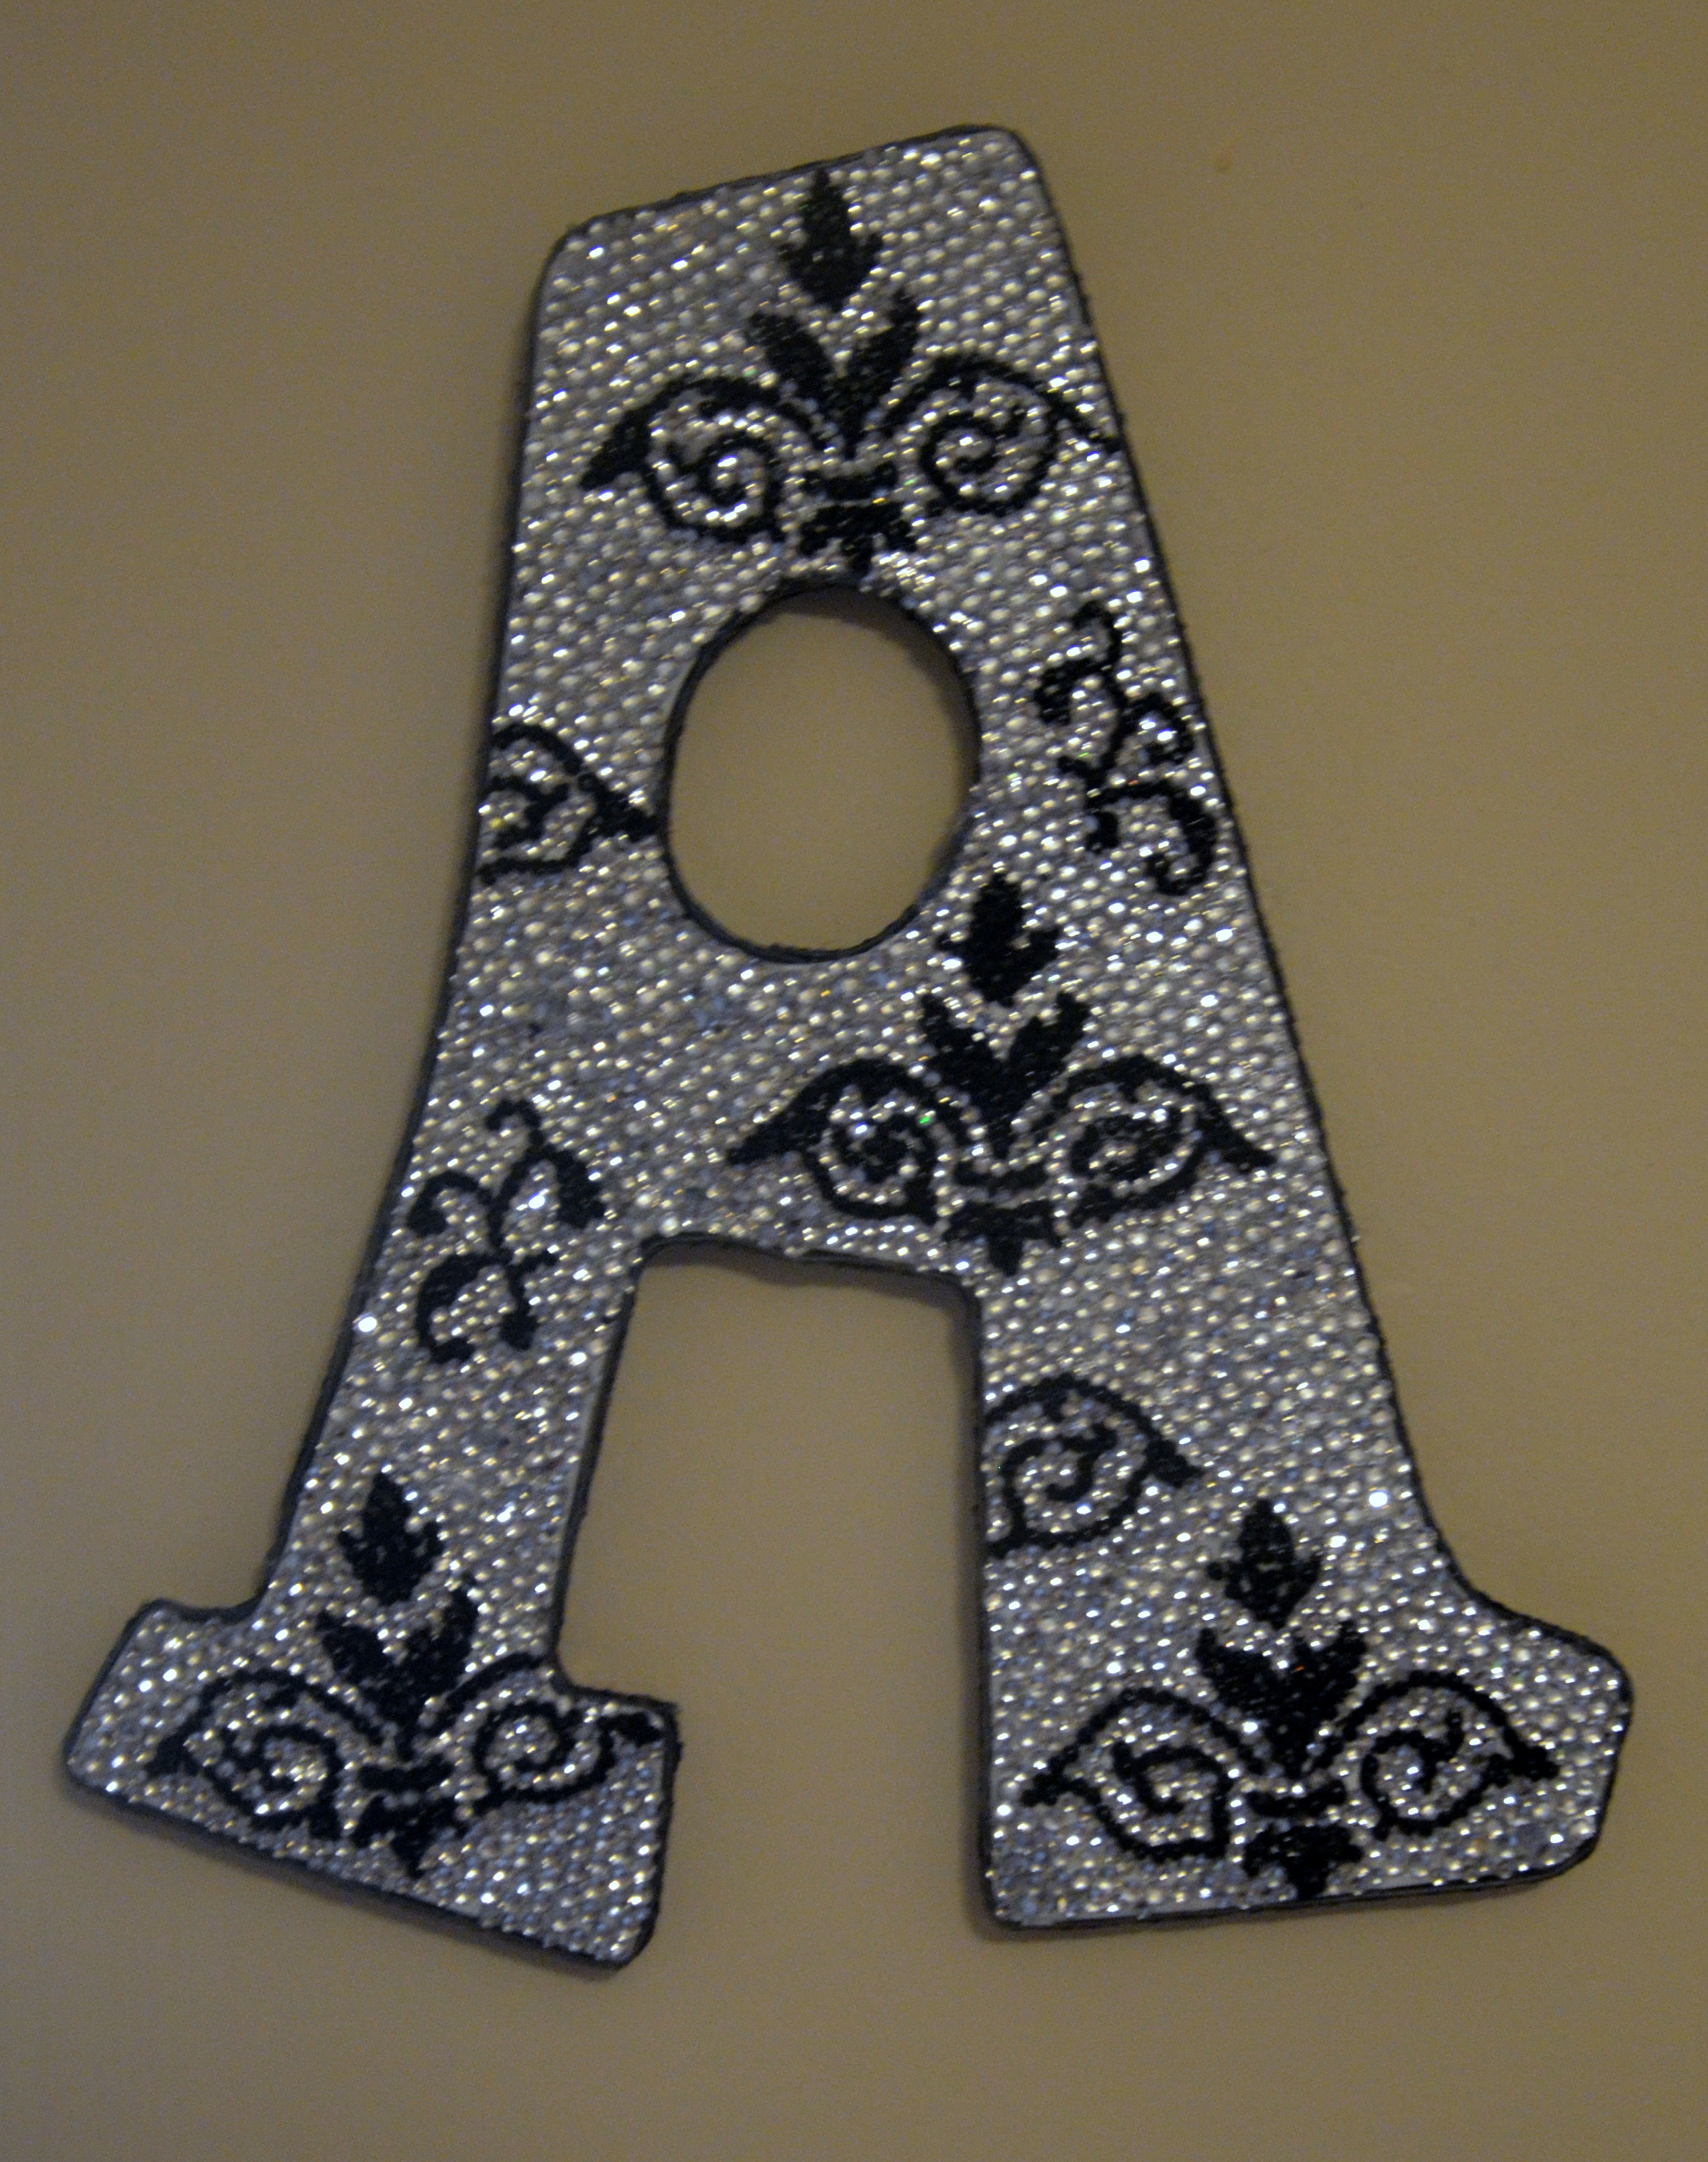 Rhinestone Damask Decorative Wall Letters, Nursery Decor, Baby Shower Gift